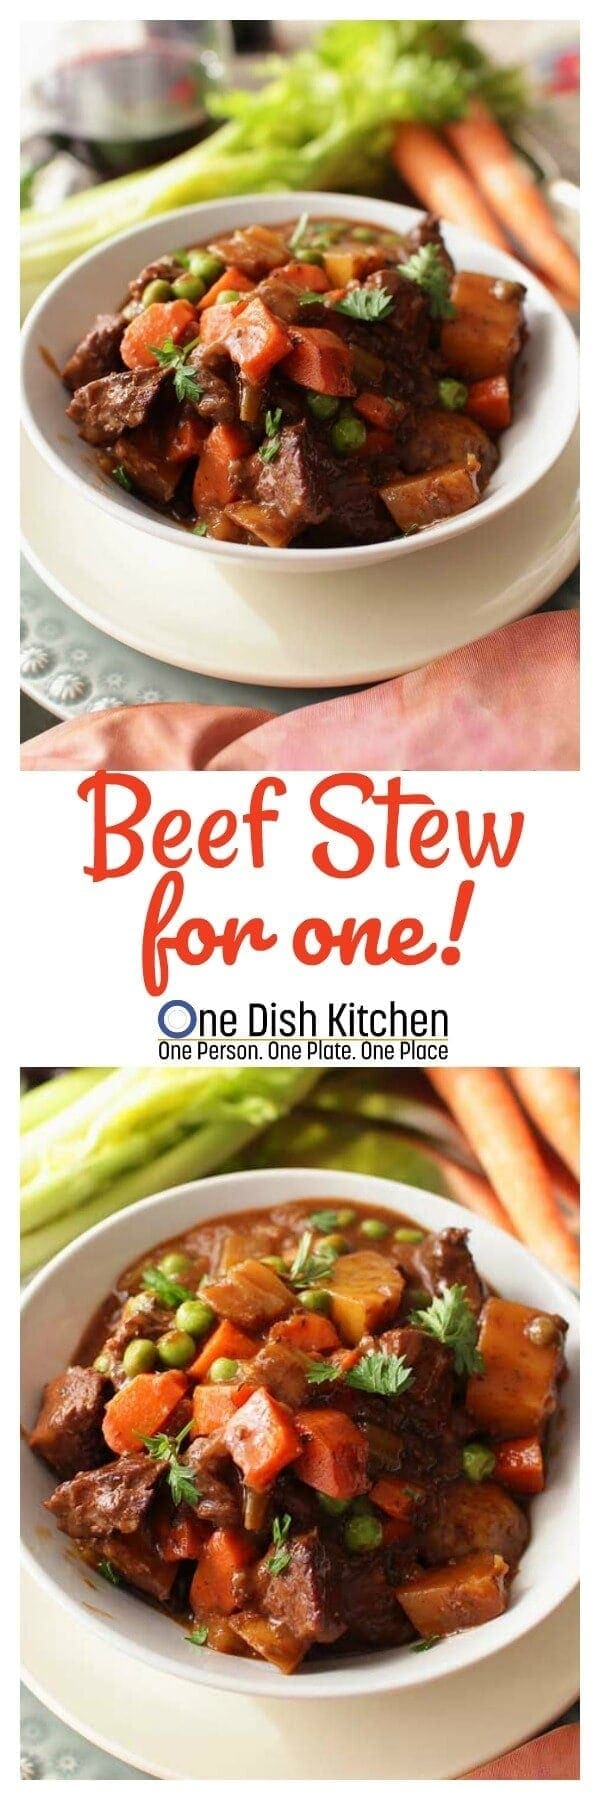 Beef Stew For One! | One Dish Kitchen